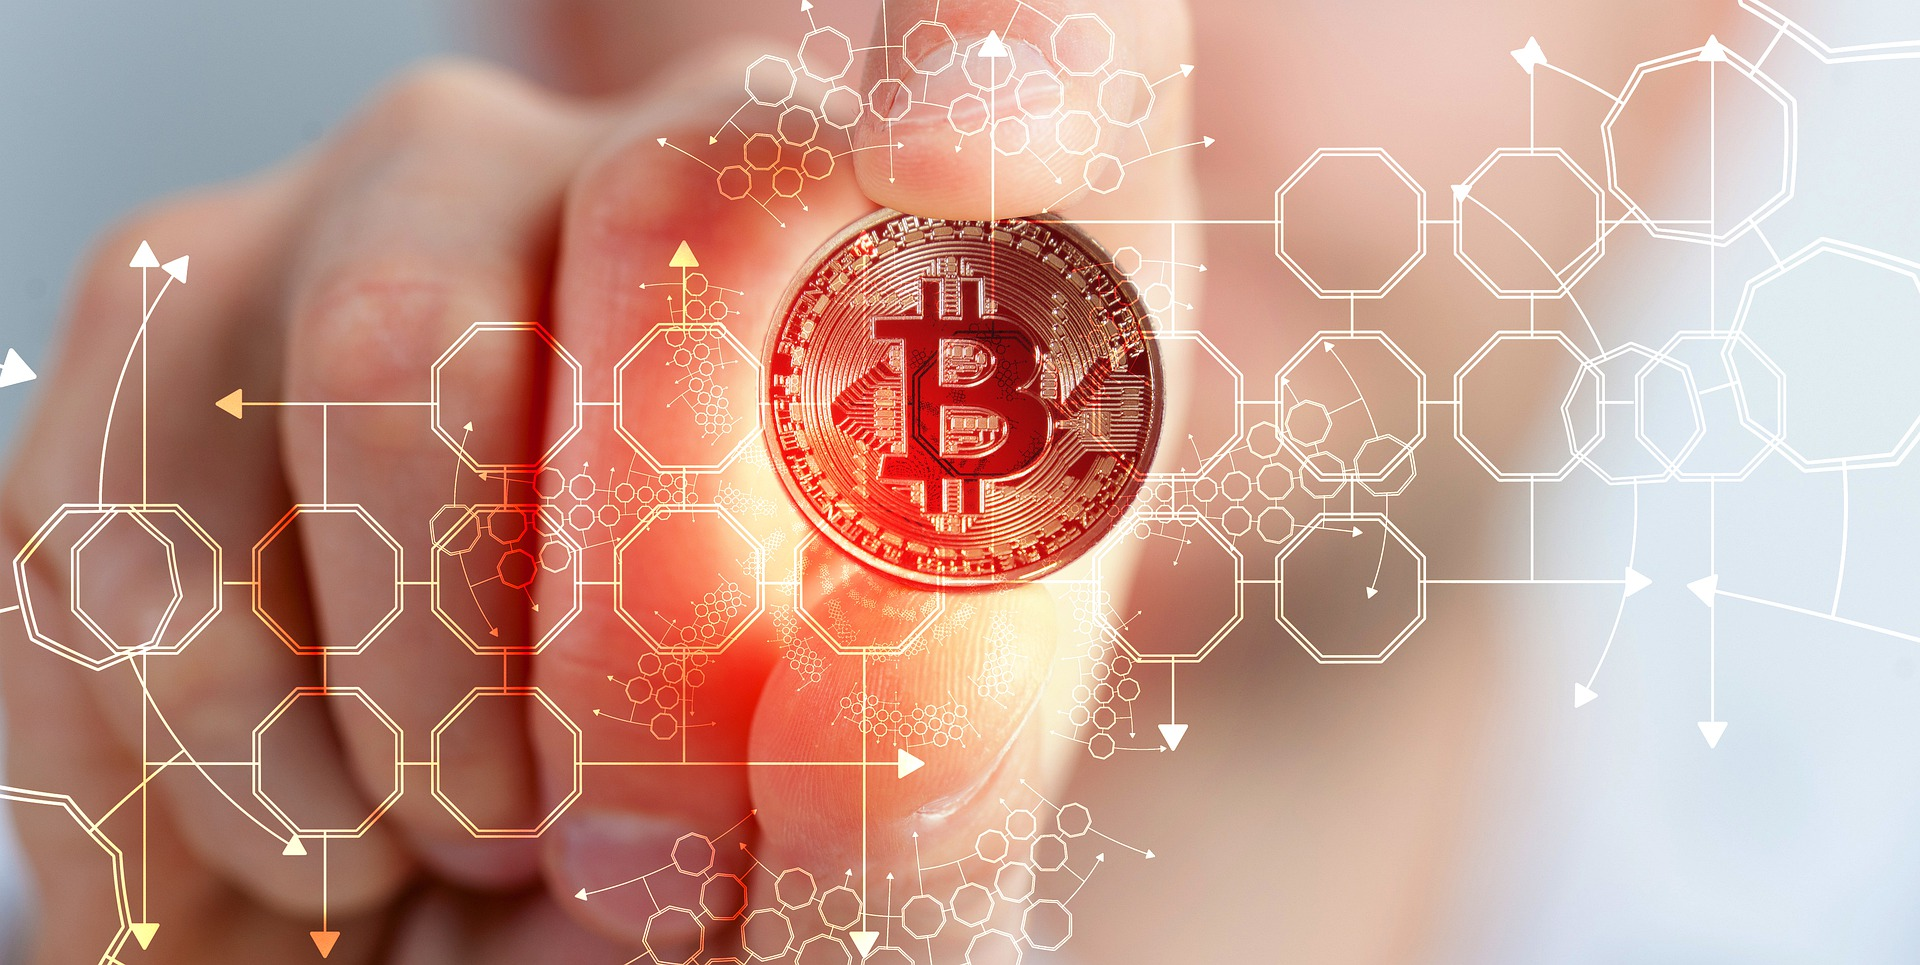 MicroSrategy CEO Michael Saylor Says Bitcoin Is A Safe Haven